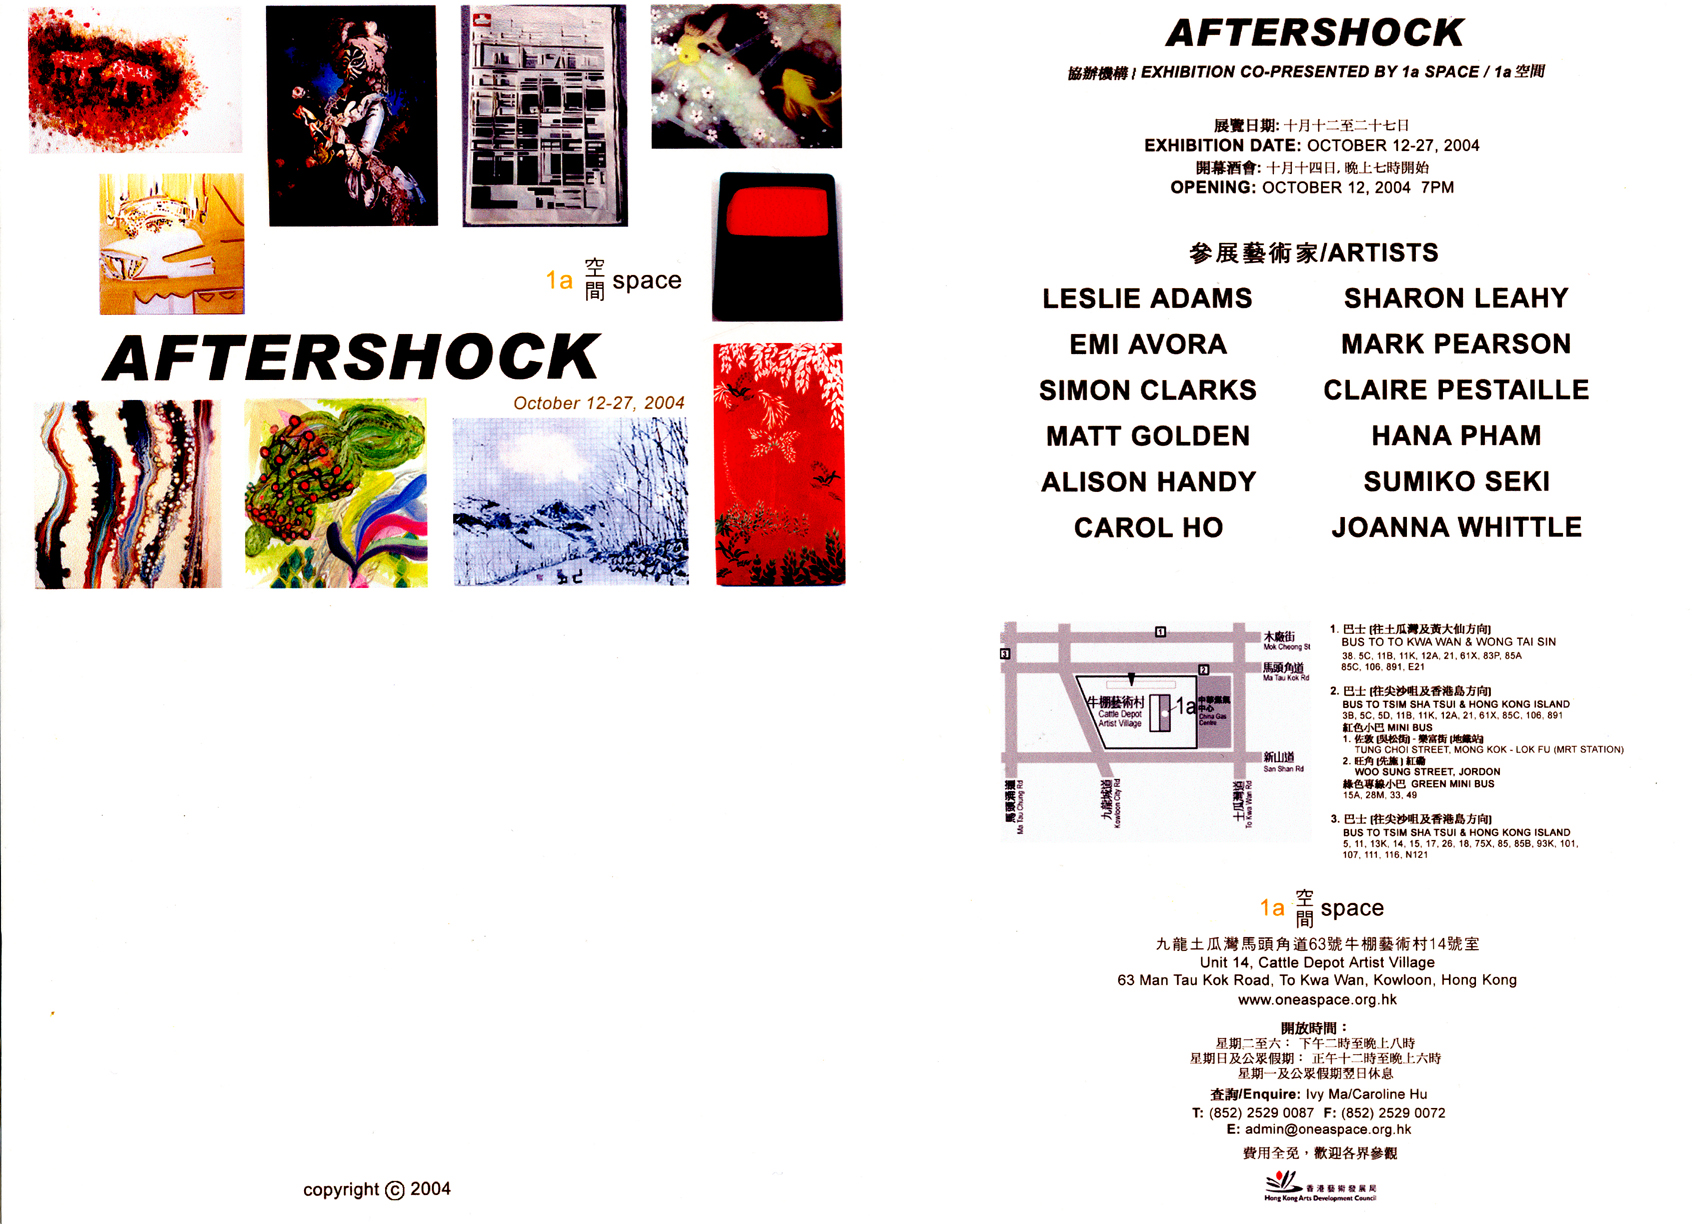 AFTERSHOCK OCT, HONG KONG, 2004